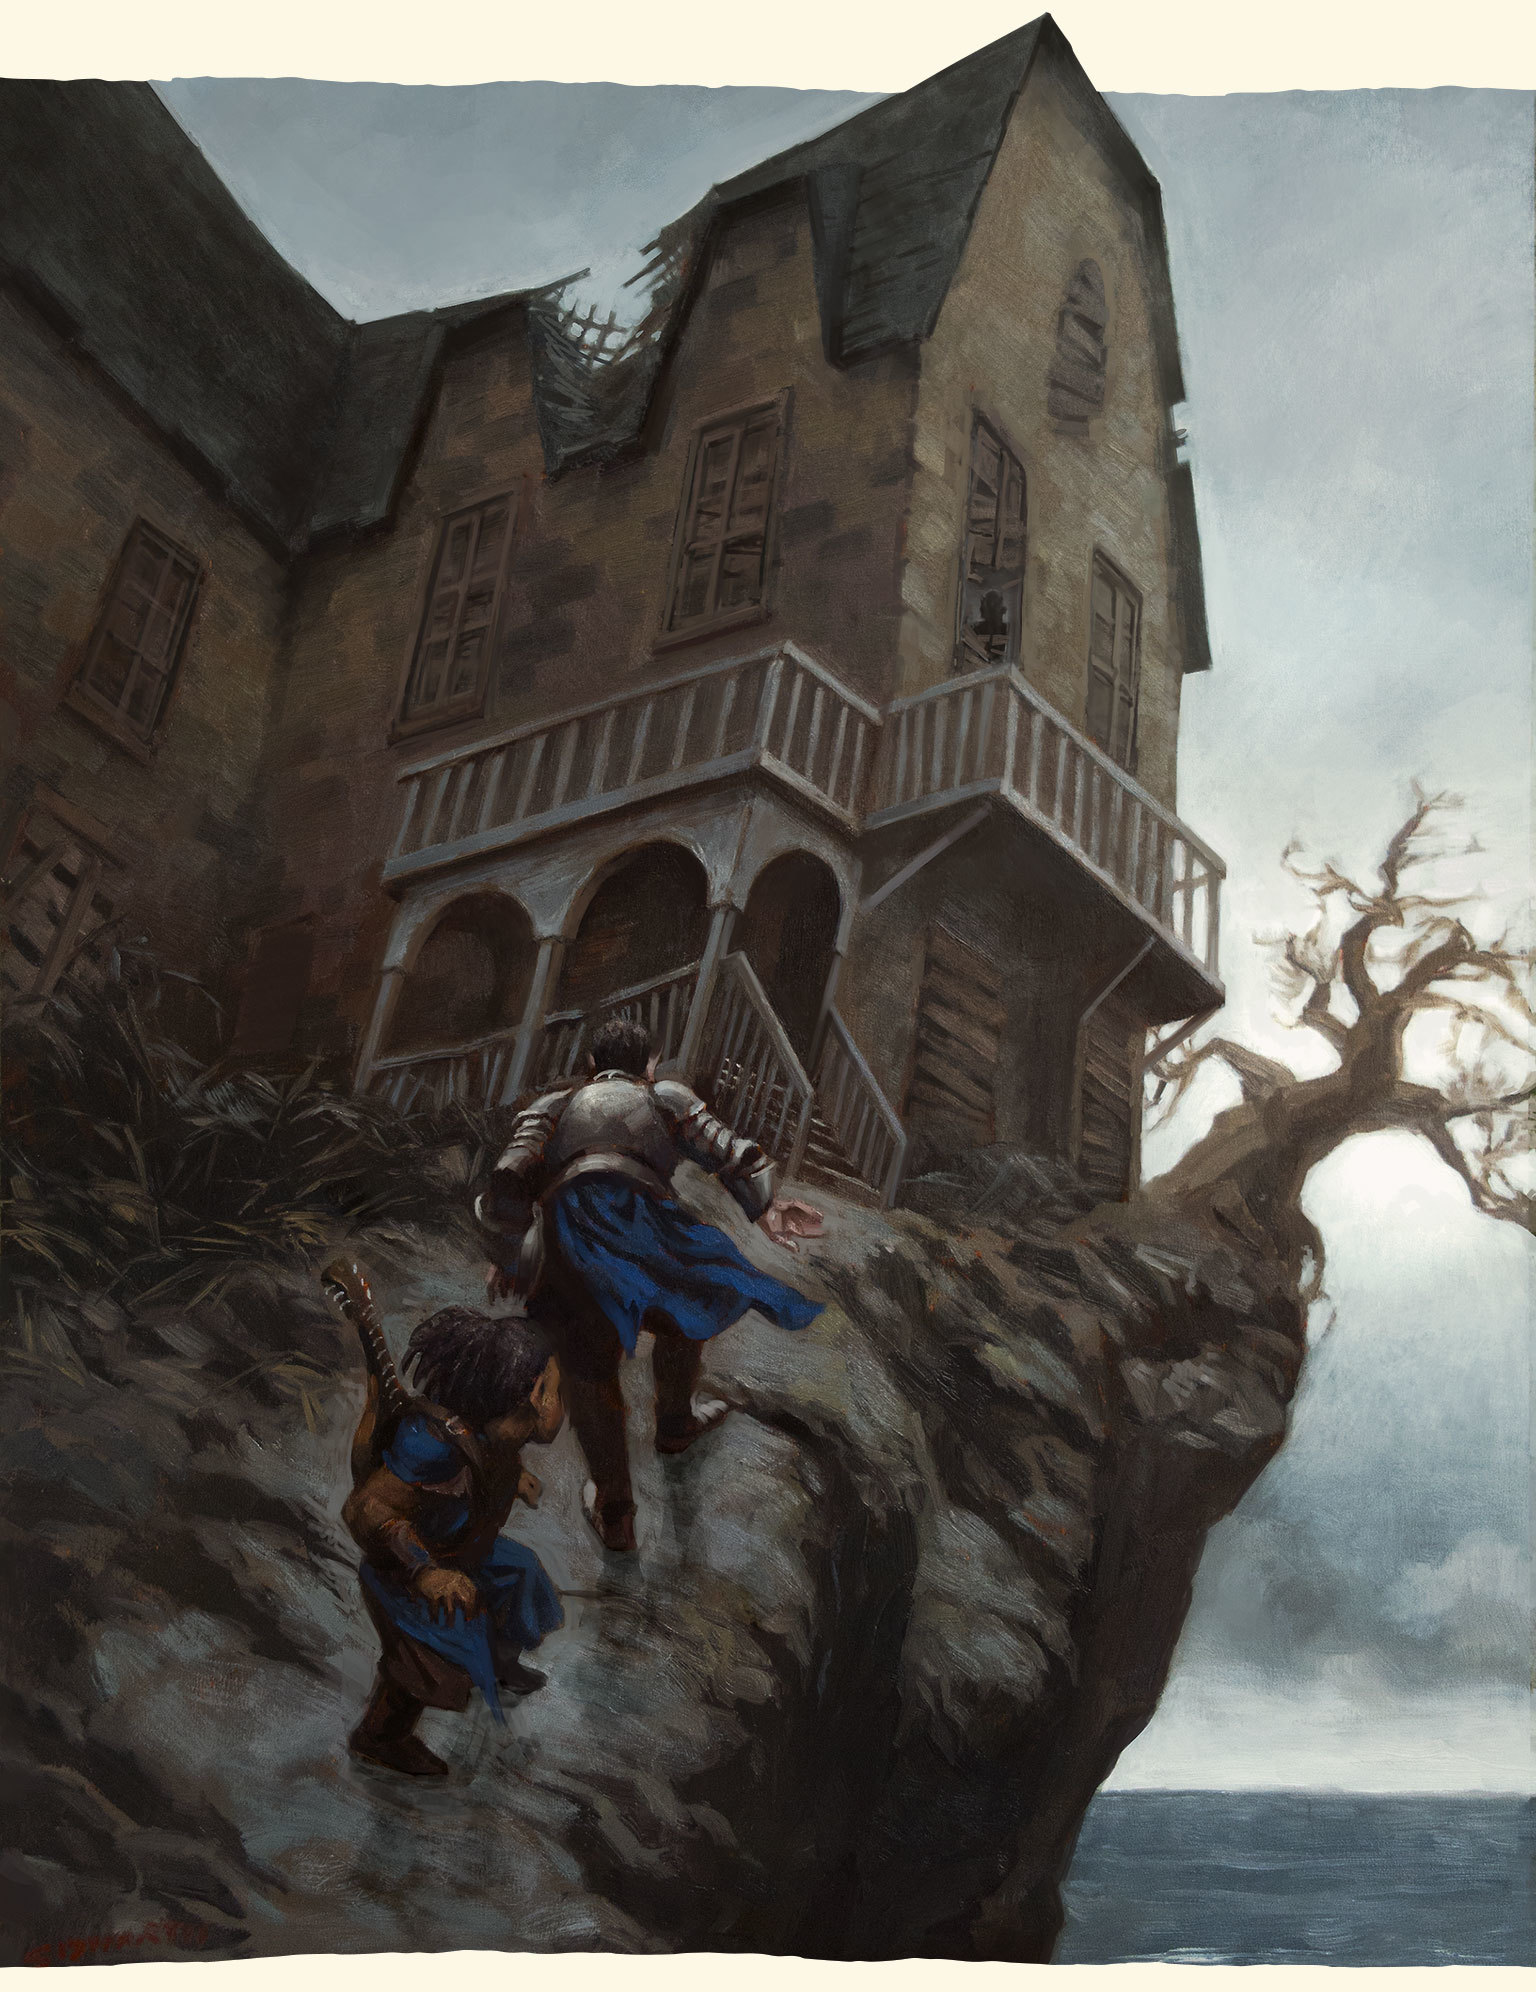 D&D: Ghosts Of Saltmarsh - The BoLS Review - Bell of Lost Souls